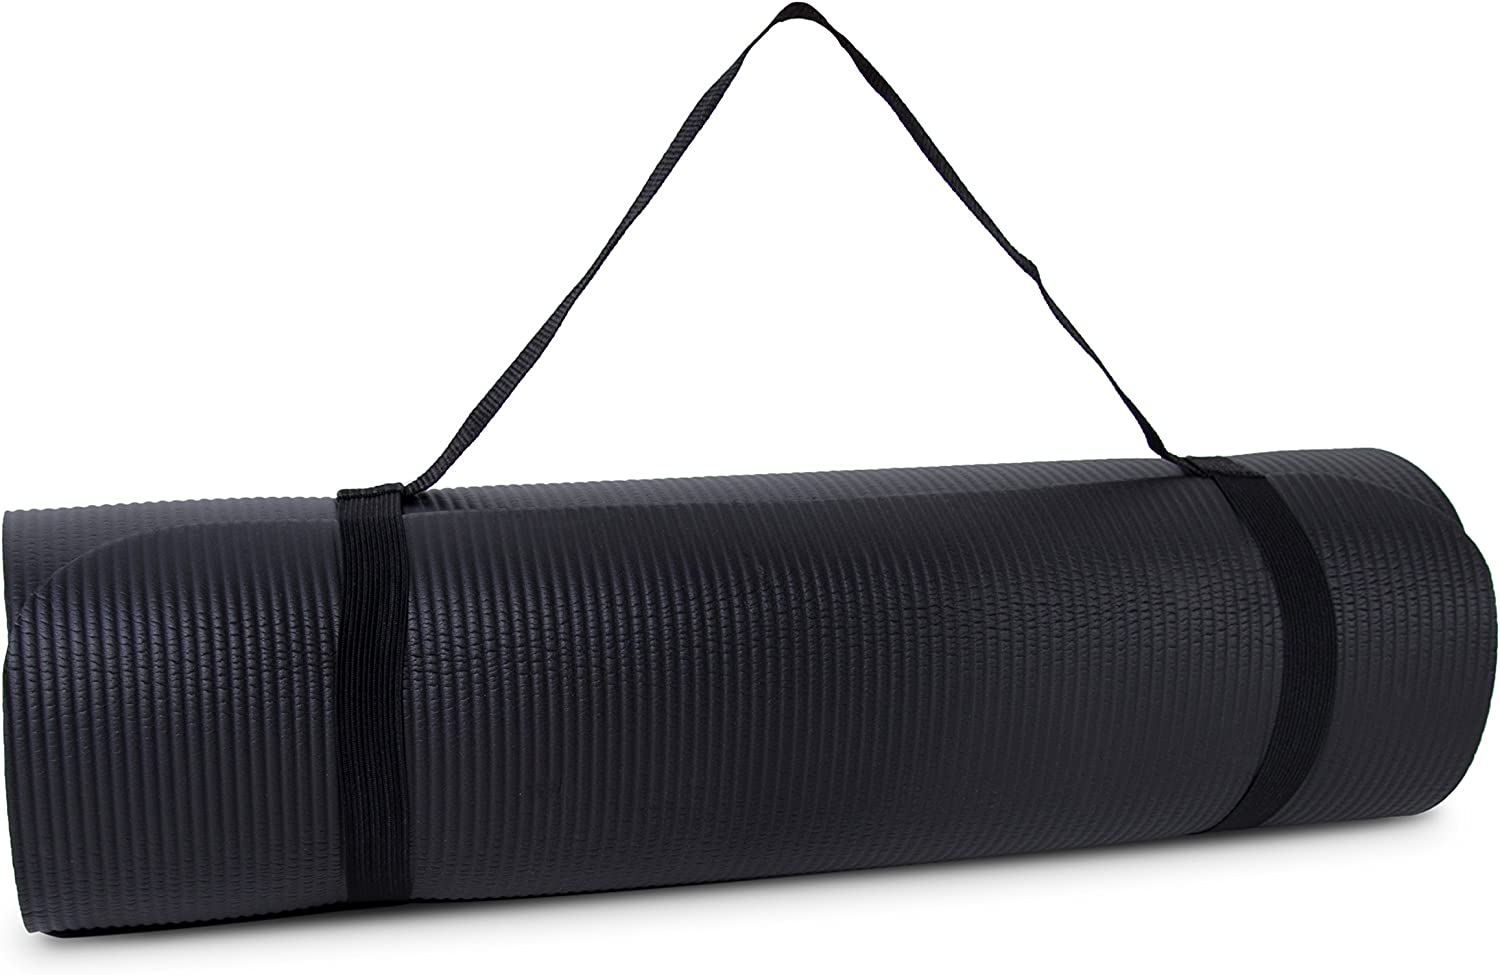 Tone Fitness Extra Thick High Density Exercise Yoga Mat, with Carrying Strap